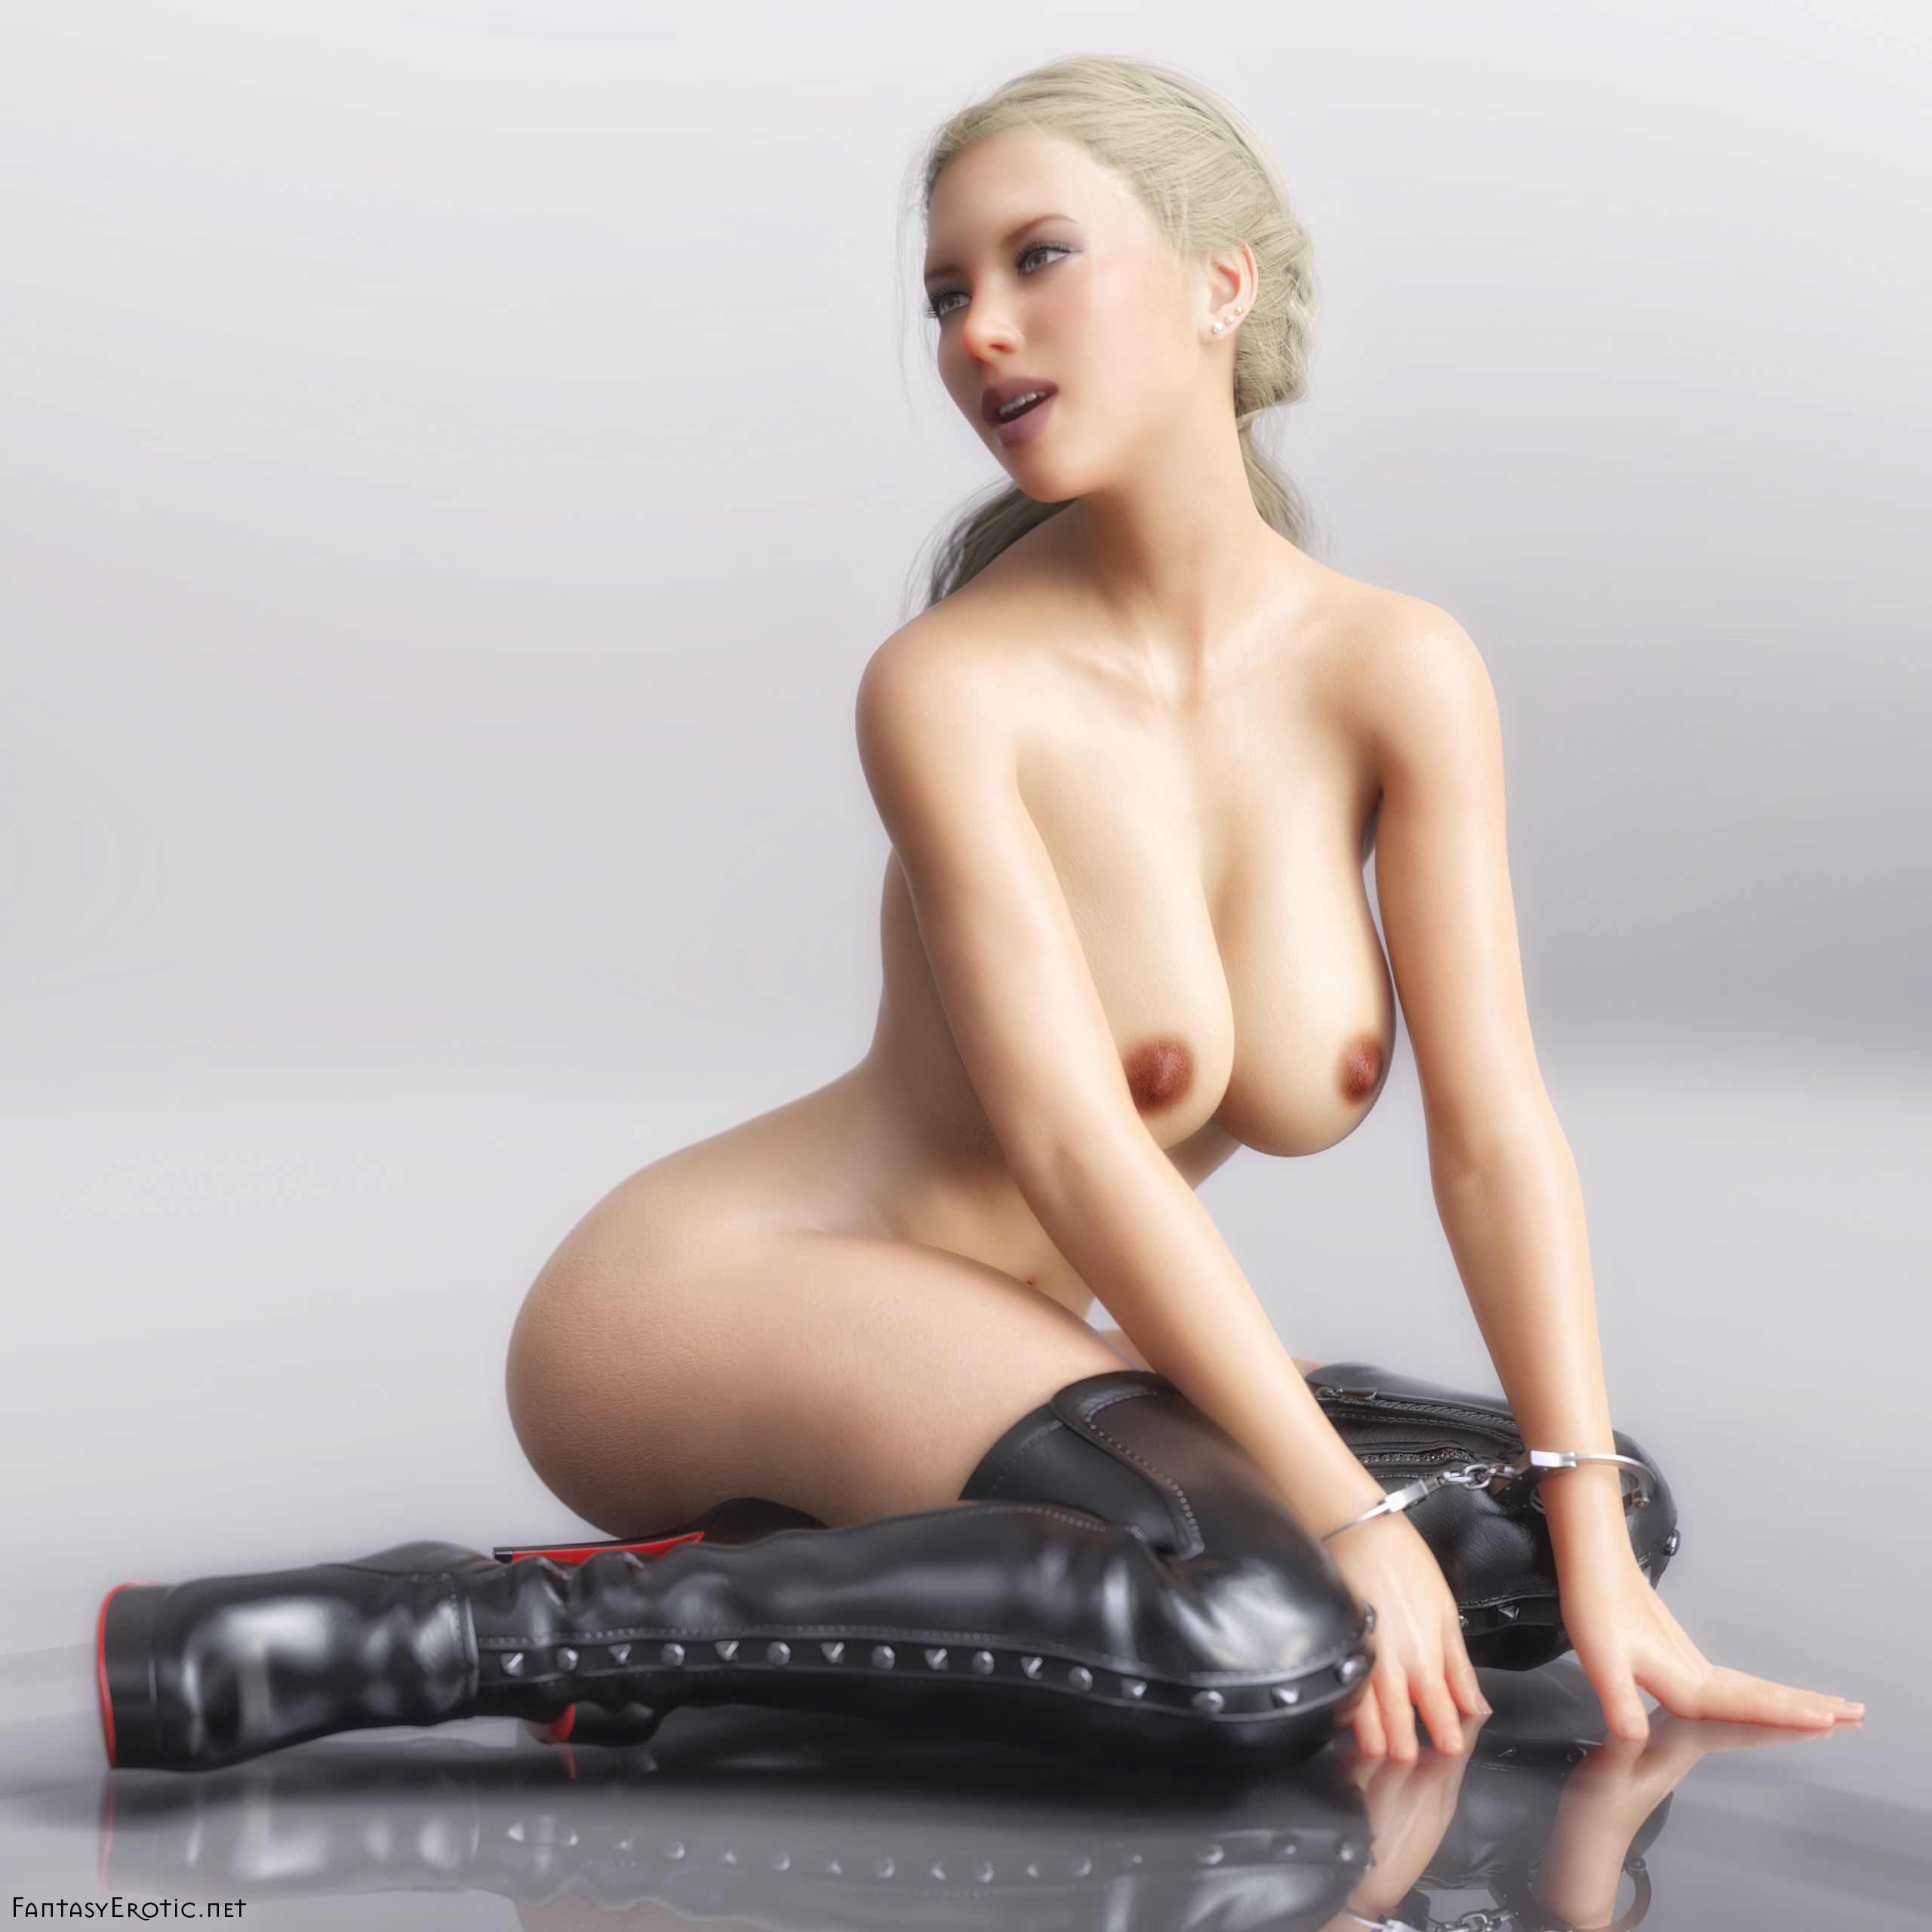 High key fetish portrait of woman with handcuffs and boots